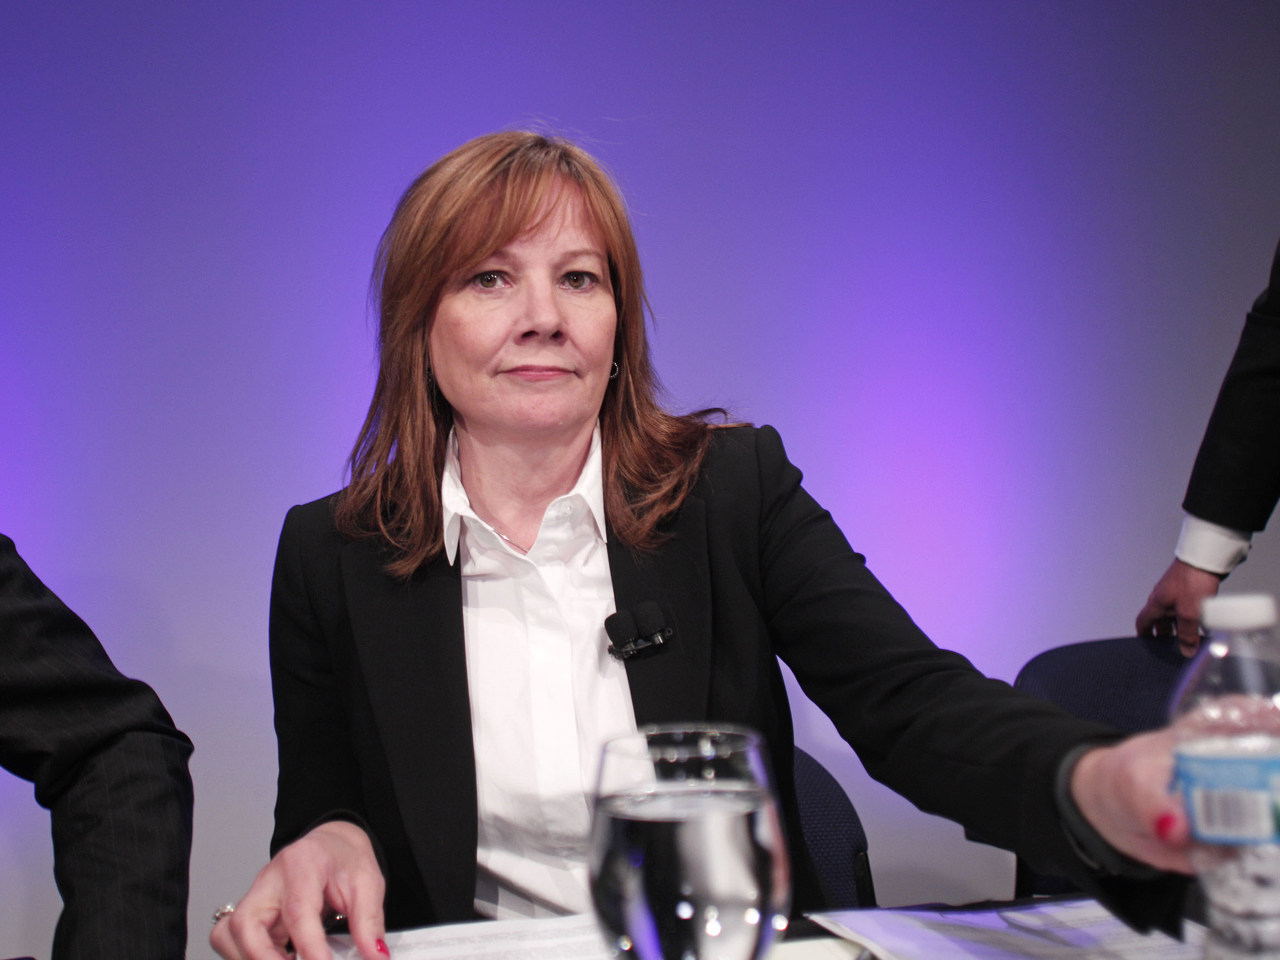 Gm Ceo Compensation Triples To 15 8m In 1st Year Cbs News